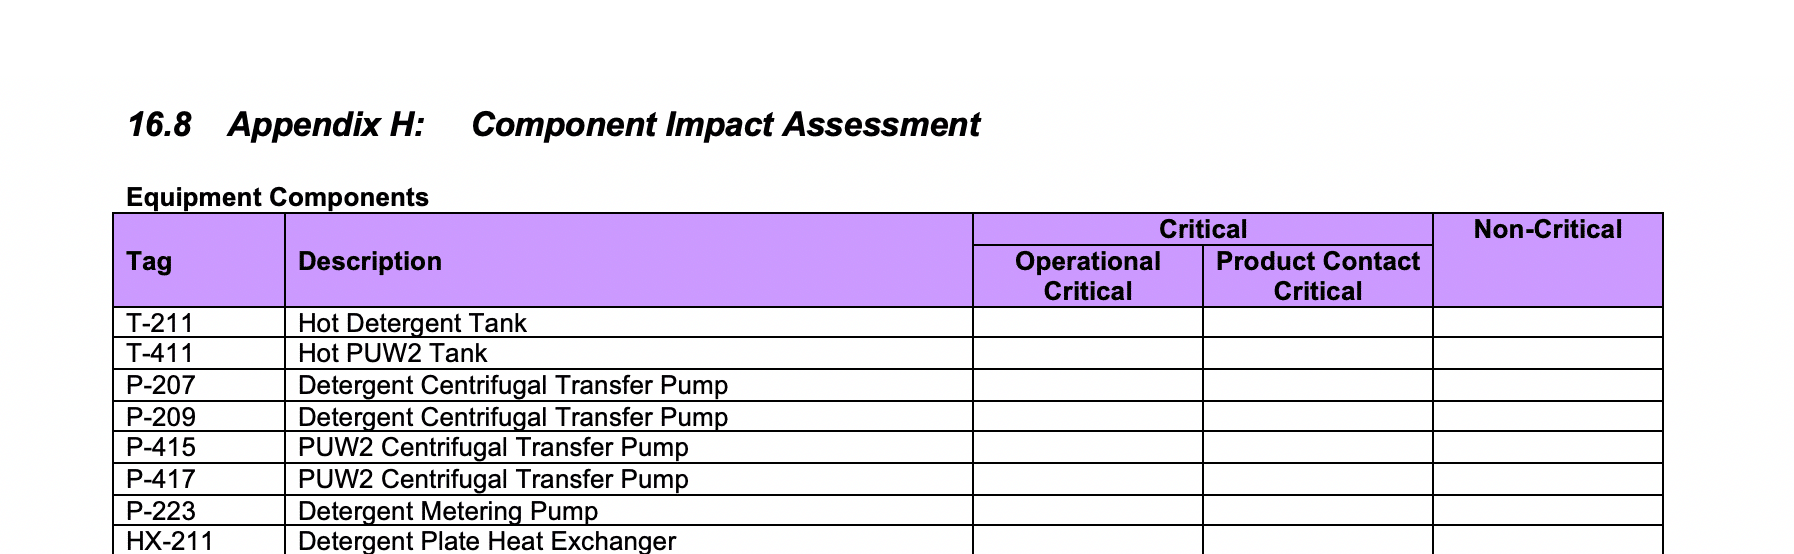 Component Impact Assessment GetReskilled